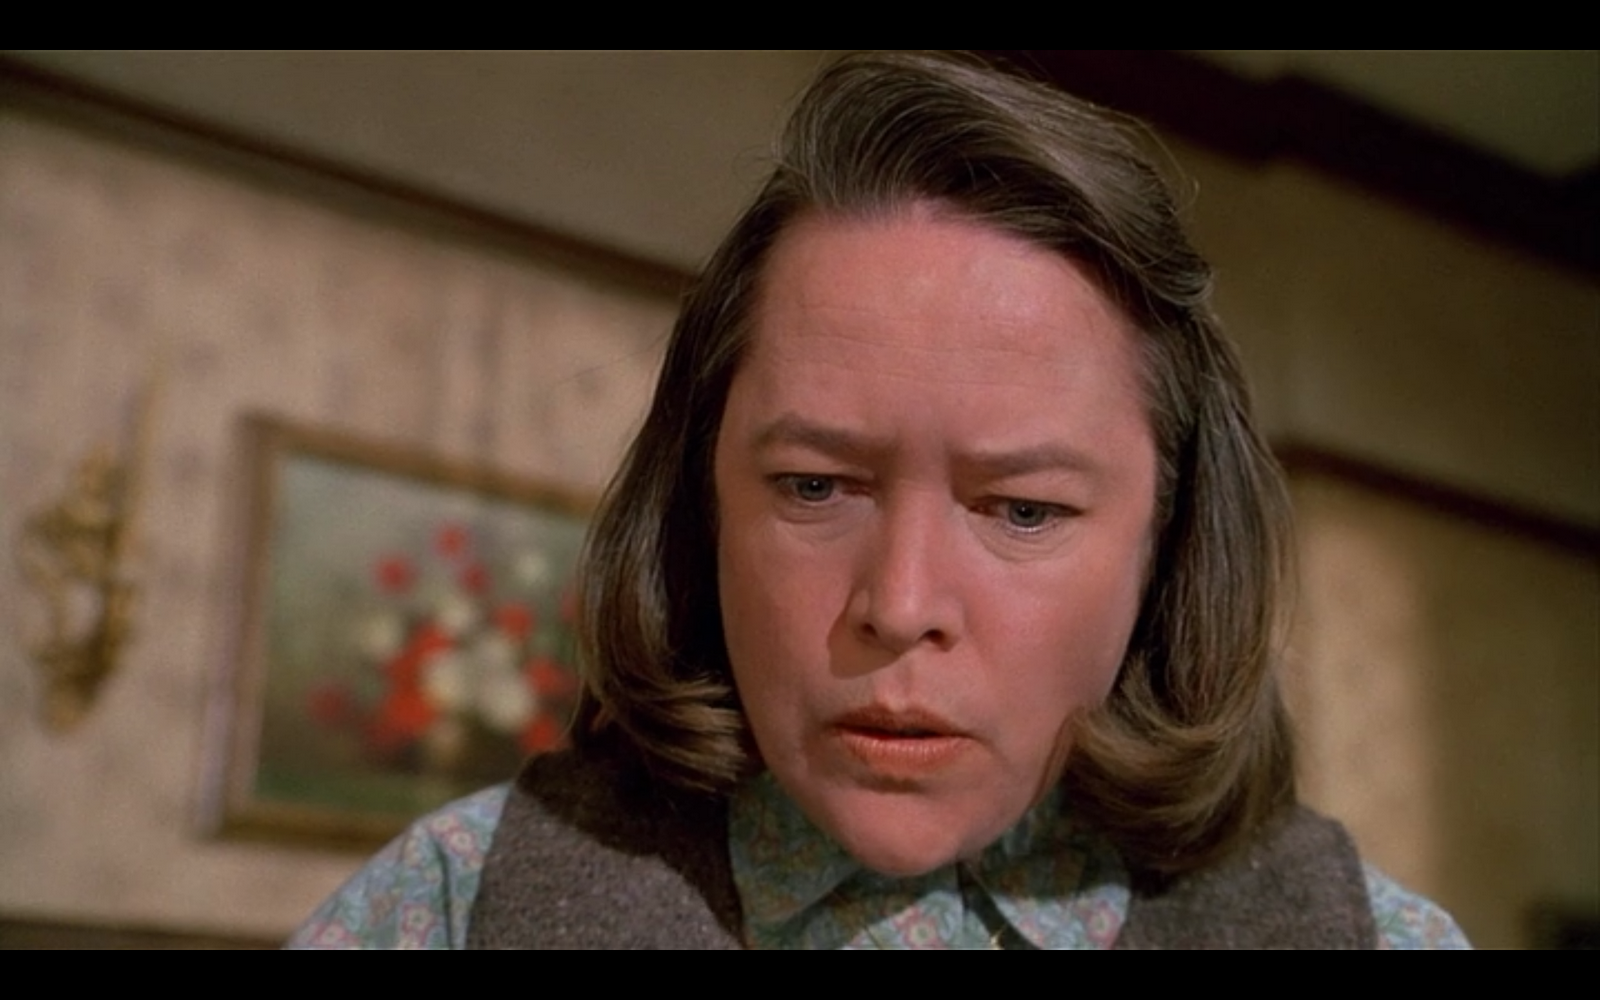 The Book, The Movie, and The difference: Misery and Misery